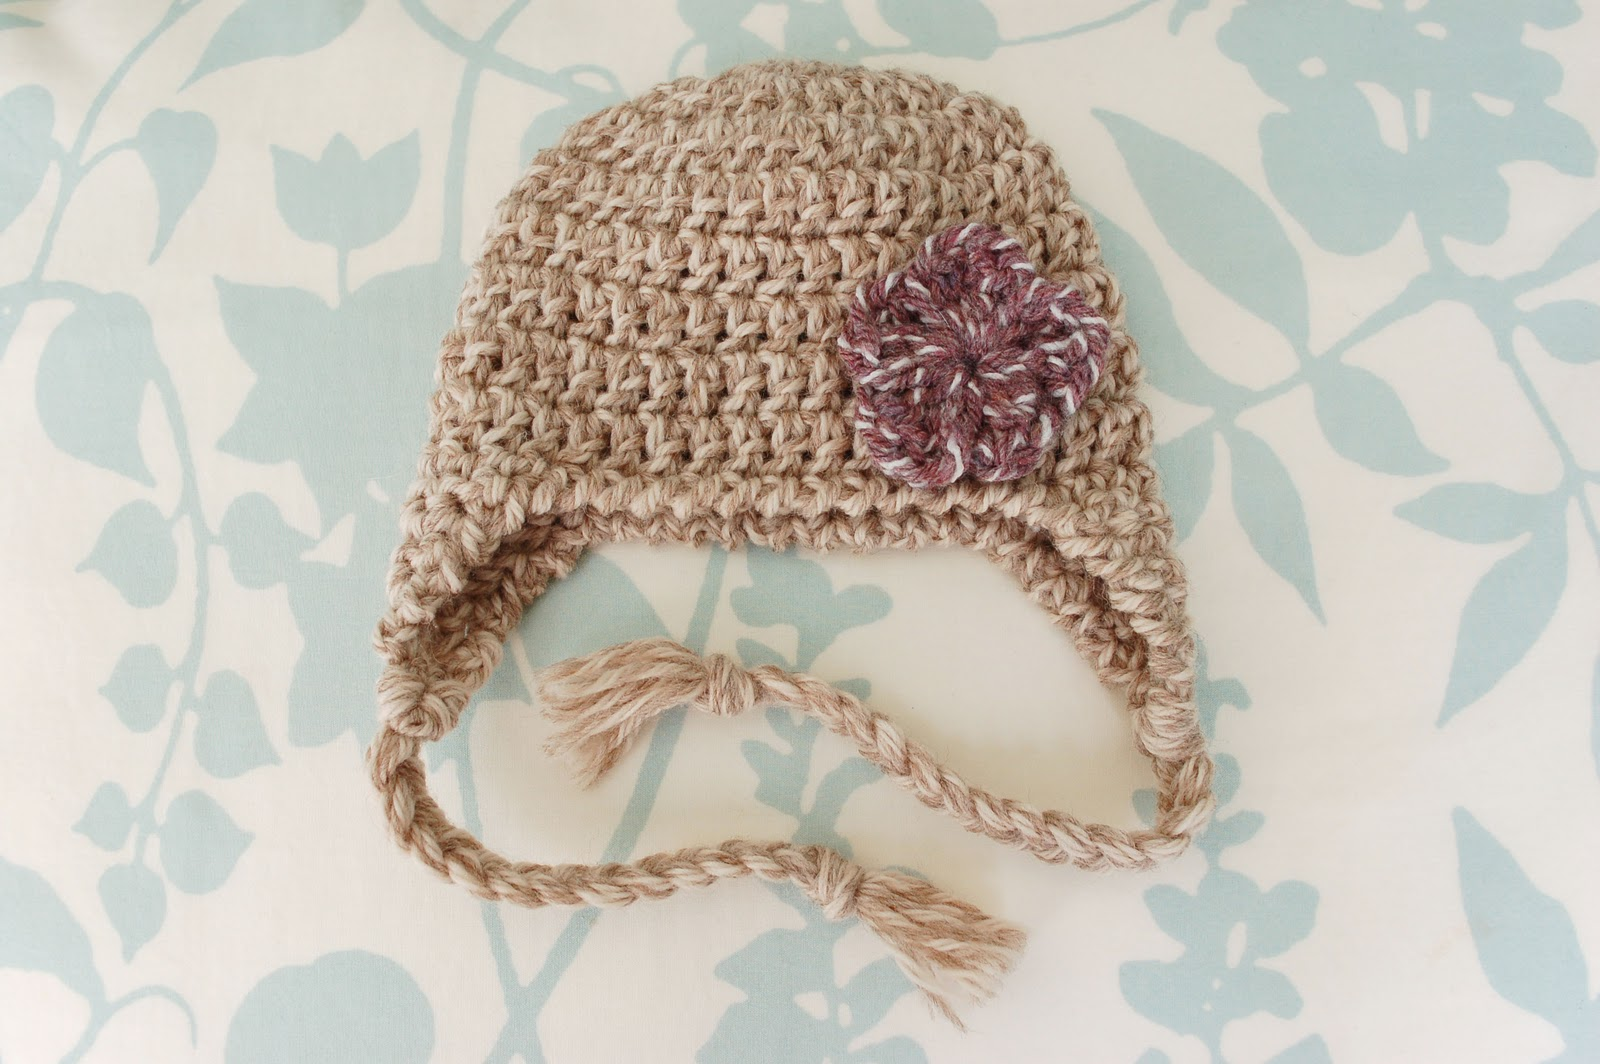 Crochet Patterns Newborn Hats : effort to standardize my hat sizes, I revamped this pattern. The new ...